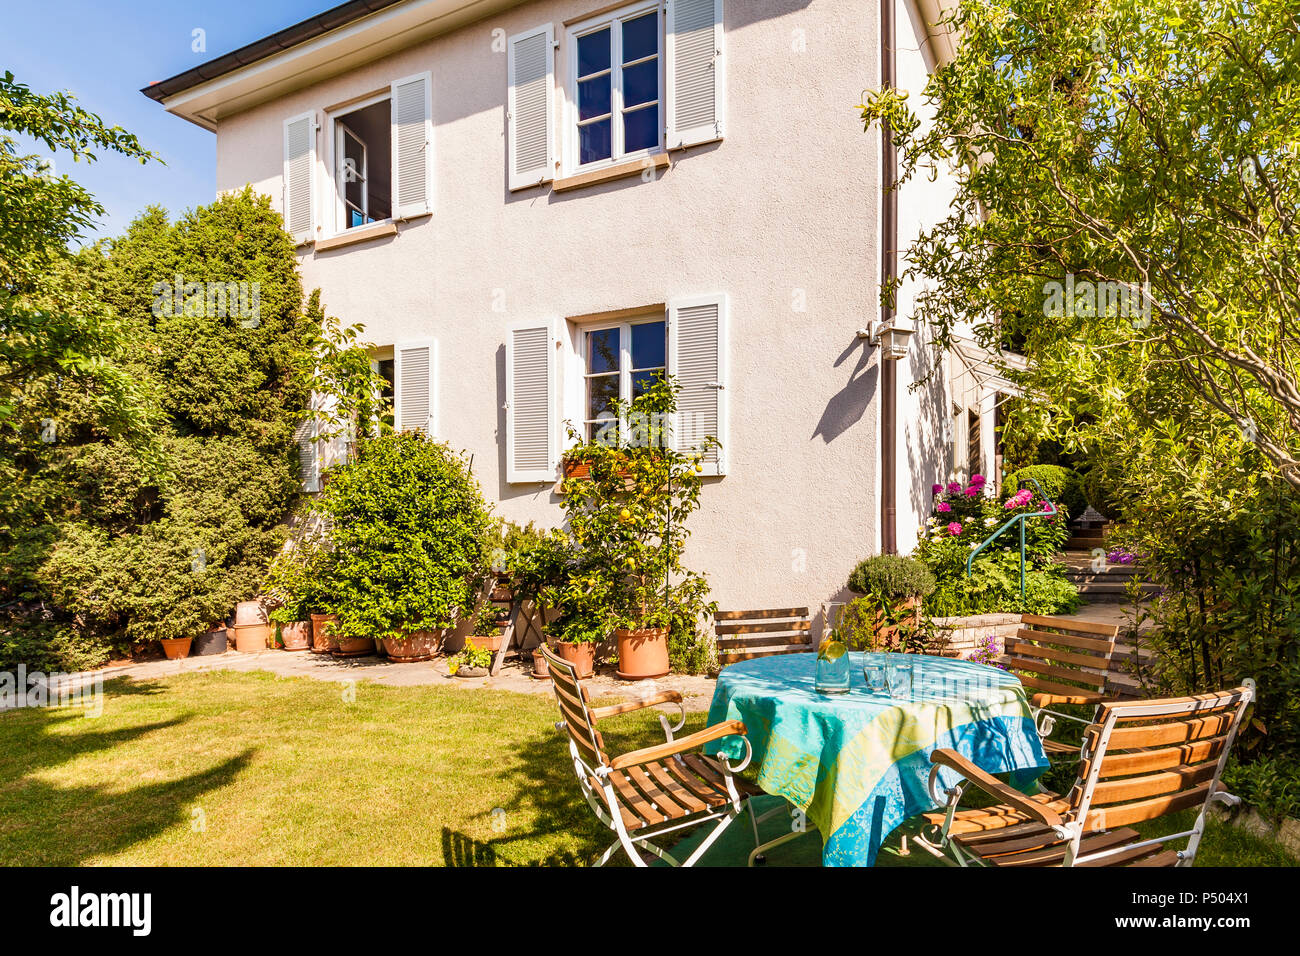 Germany, Stuttgart, one-family house, garden table with lawn chairs - Stock Image